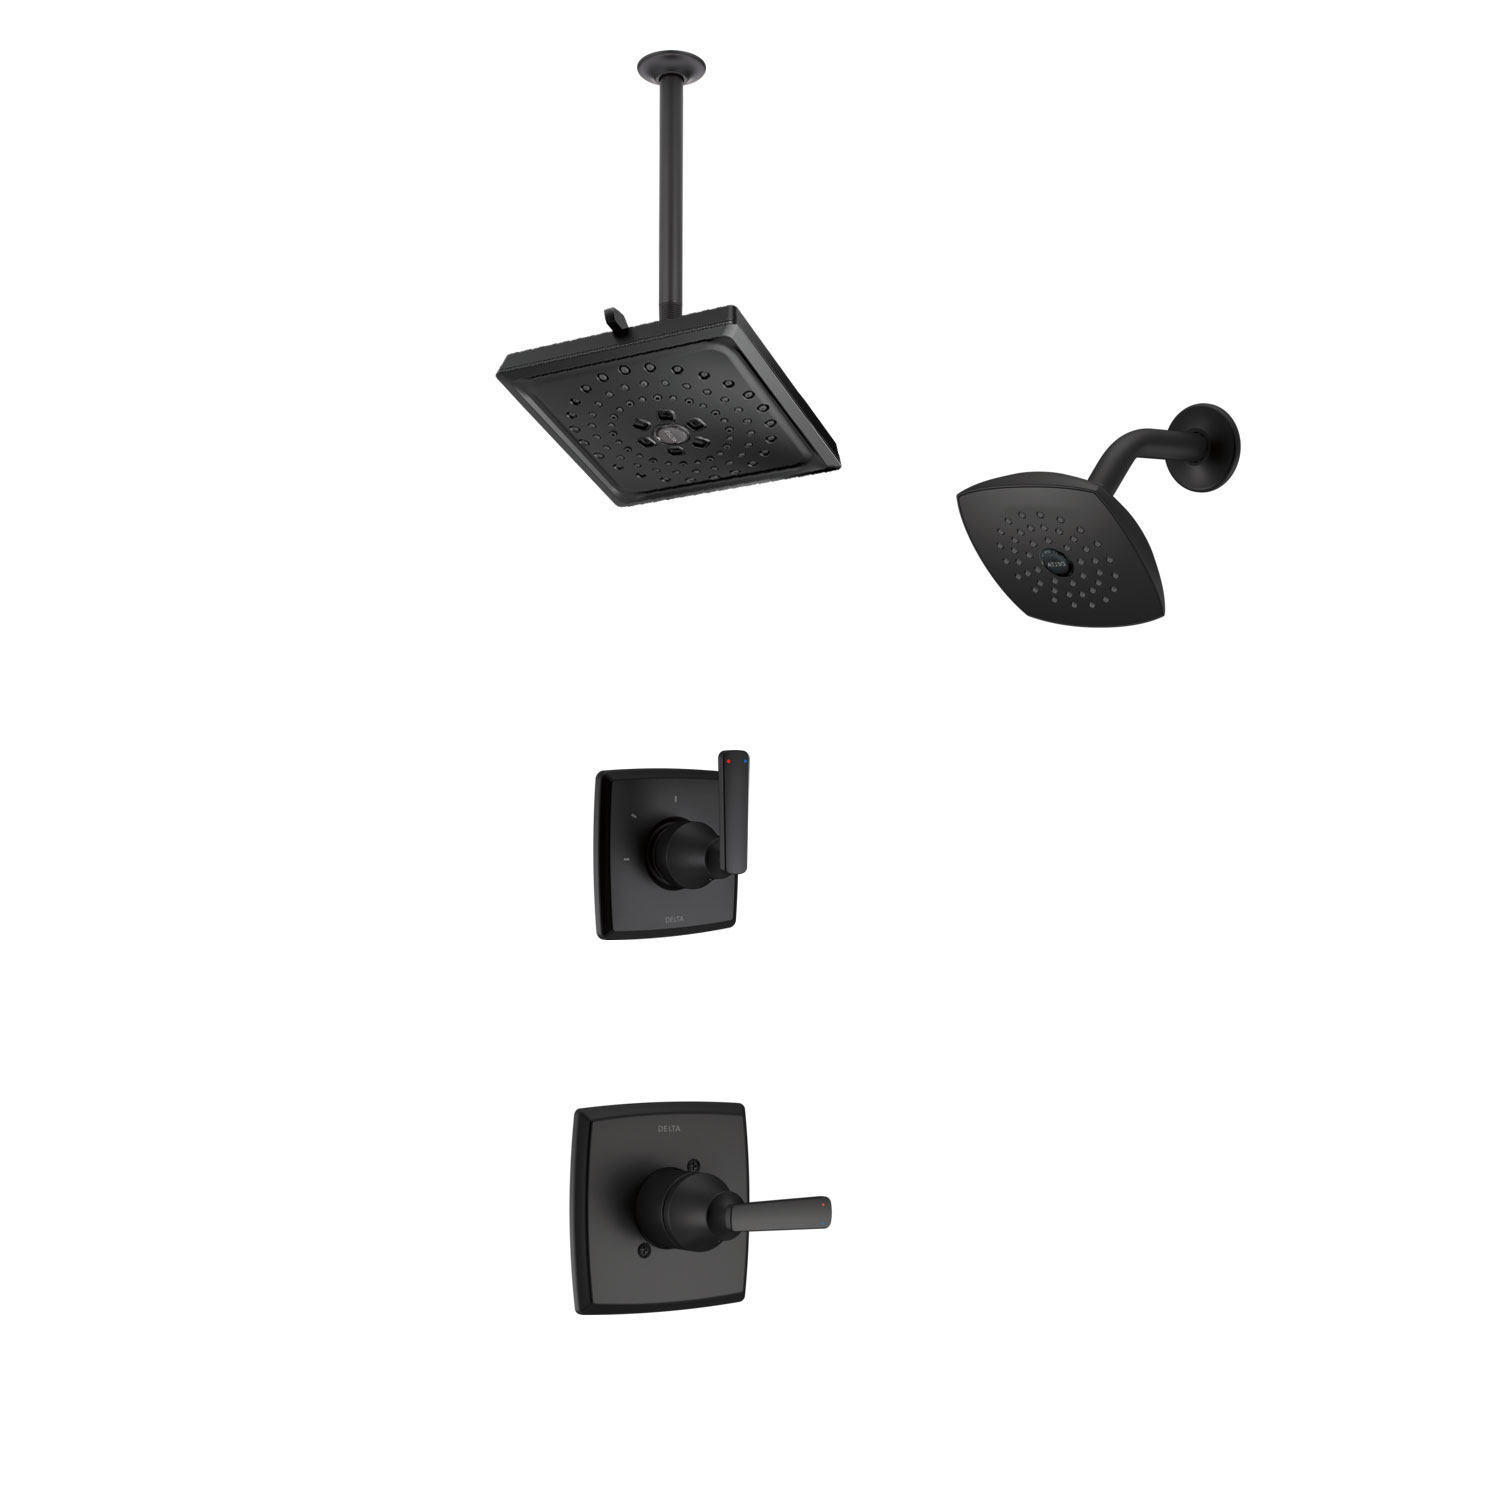 Delta Ashlyn Matte Black Finish Shower System with Control Handle, 3-Setting Diverter, Showerhead, and Ceiling Mount Showerhead CUSTOM723V